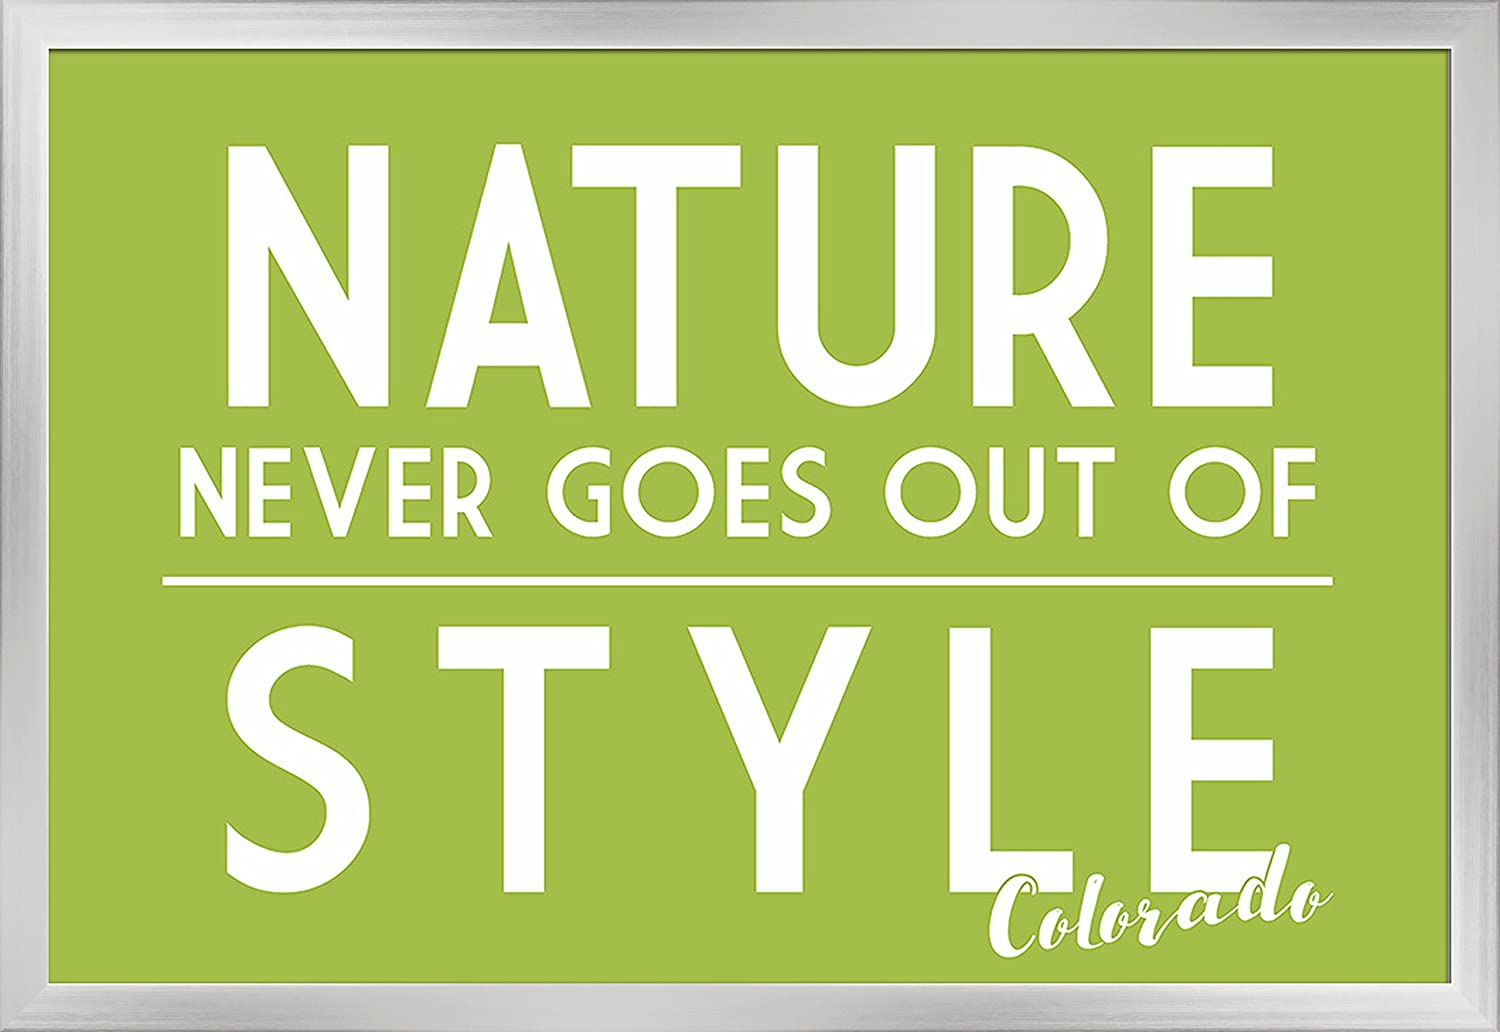 36x24 Giclee Art Print, Gallery Framed, White Wood Colorado Simply Said Nature Never Goes Out of Style